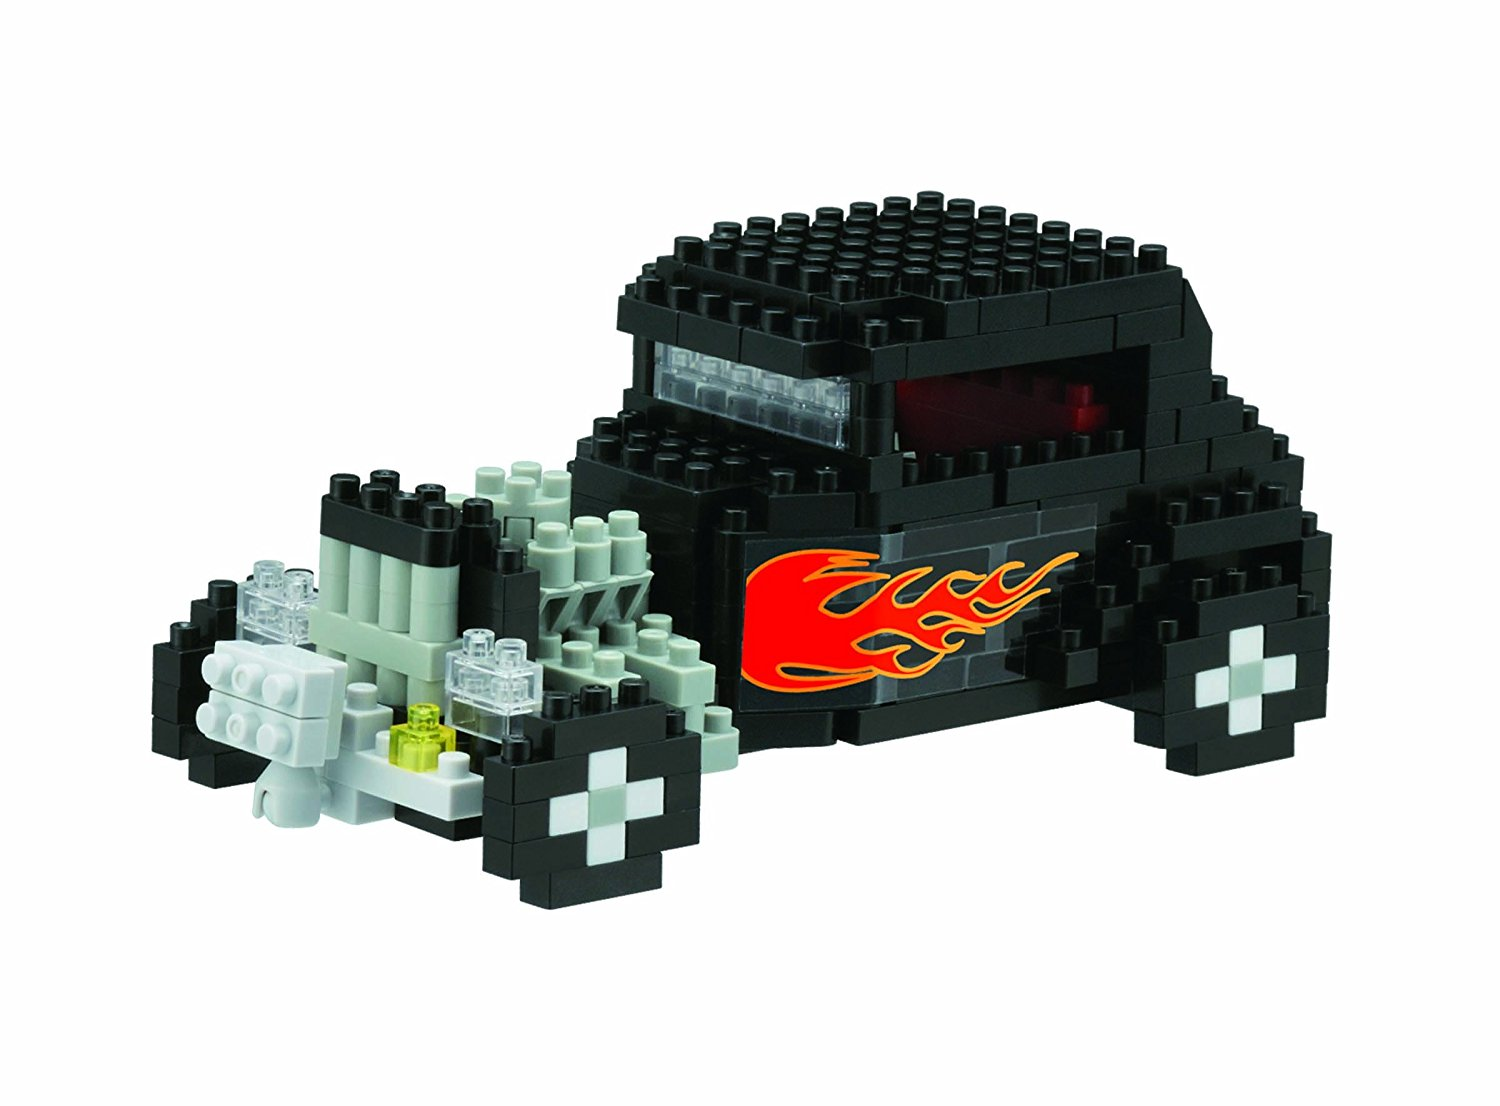 Classic Hot Rod Building Kit, coloured using soy ink By Nanoblock by